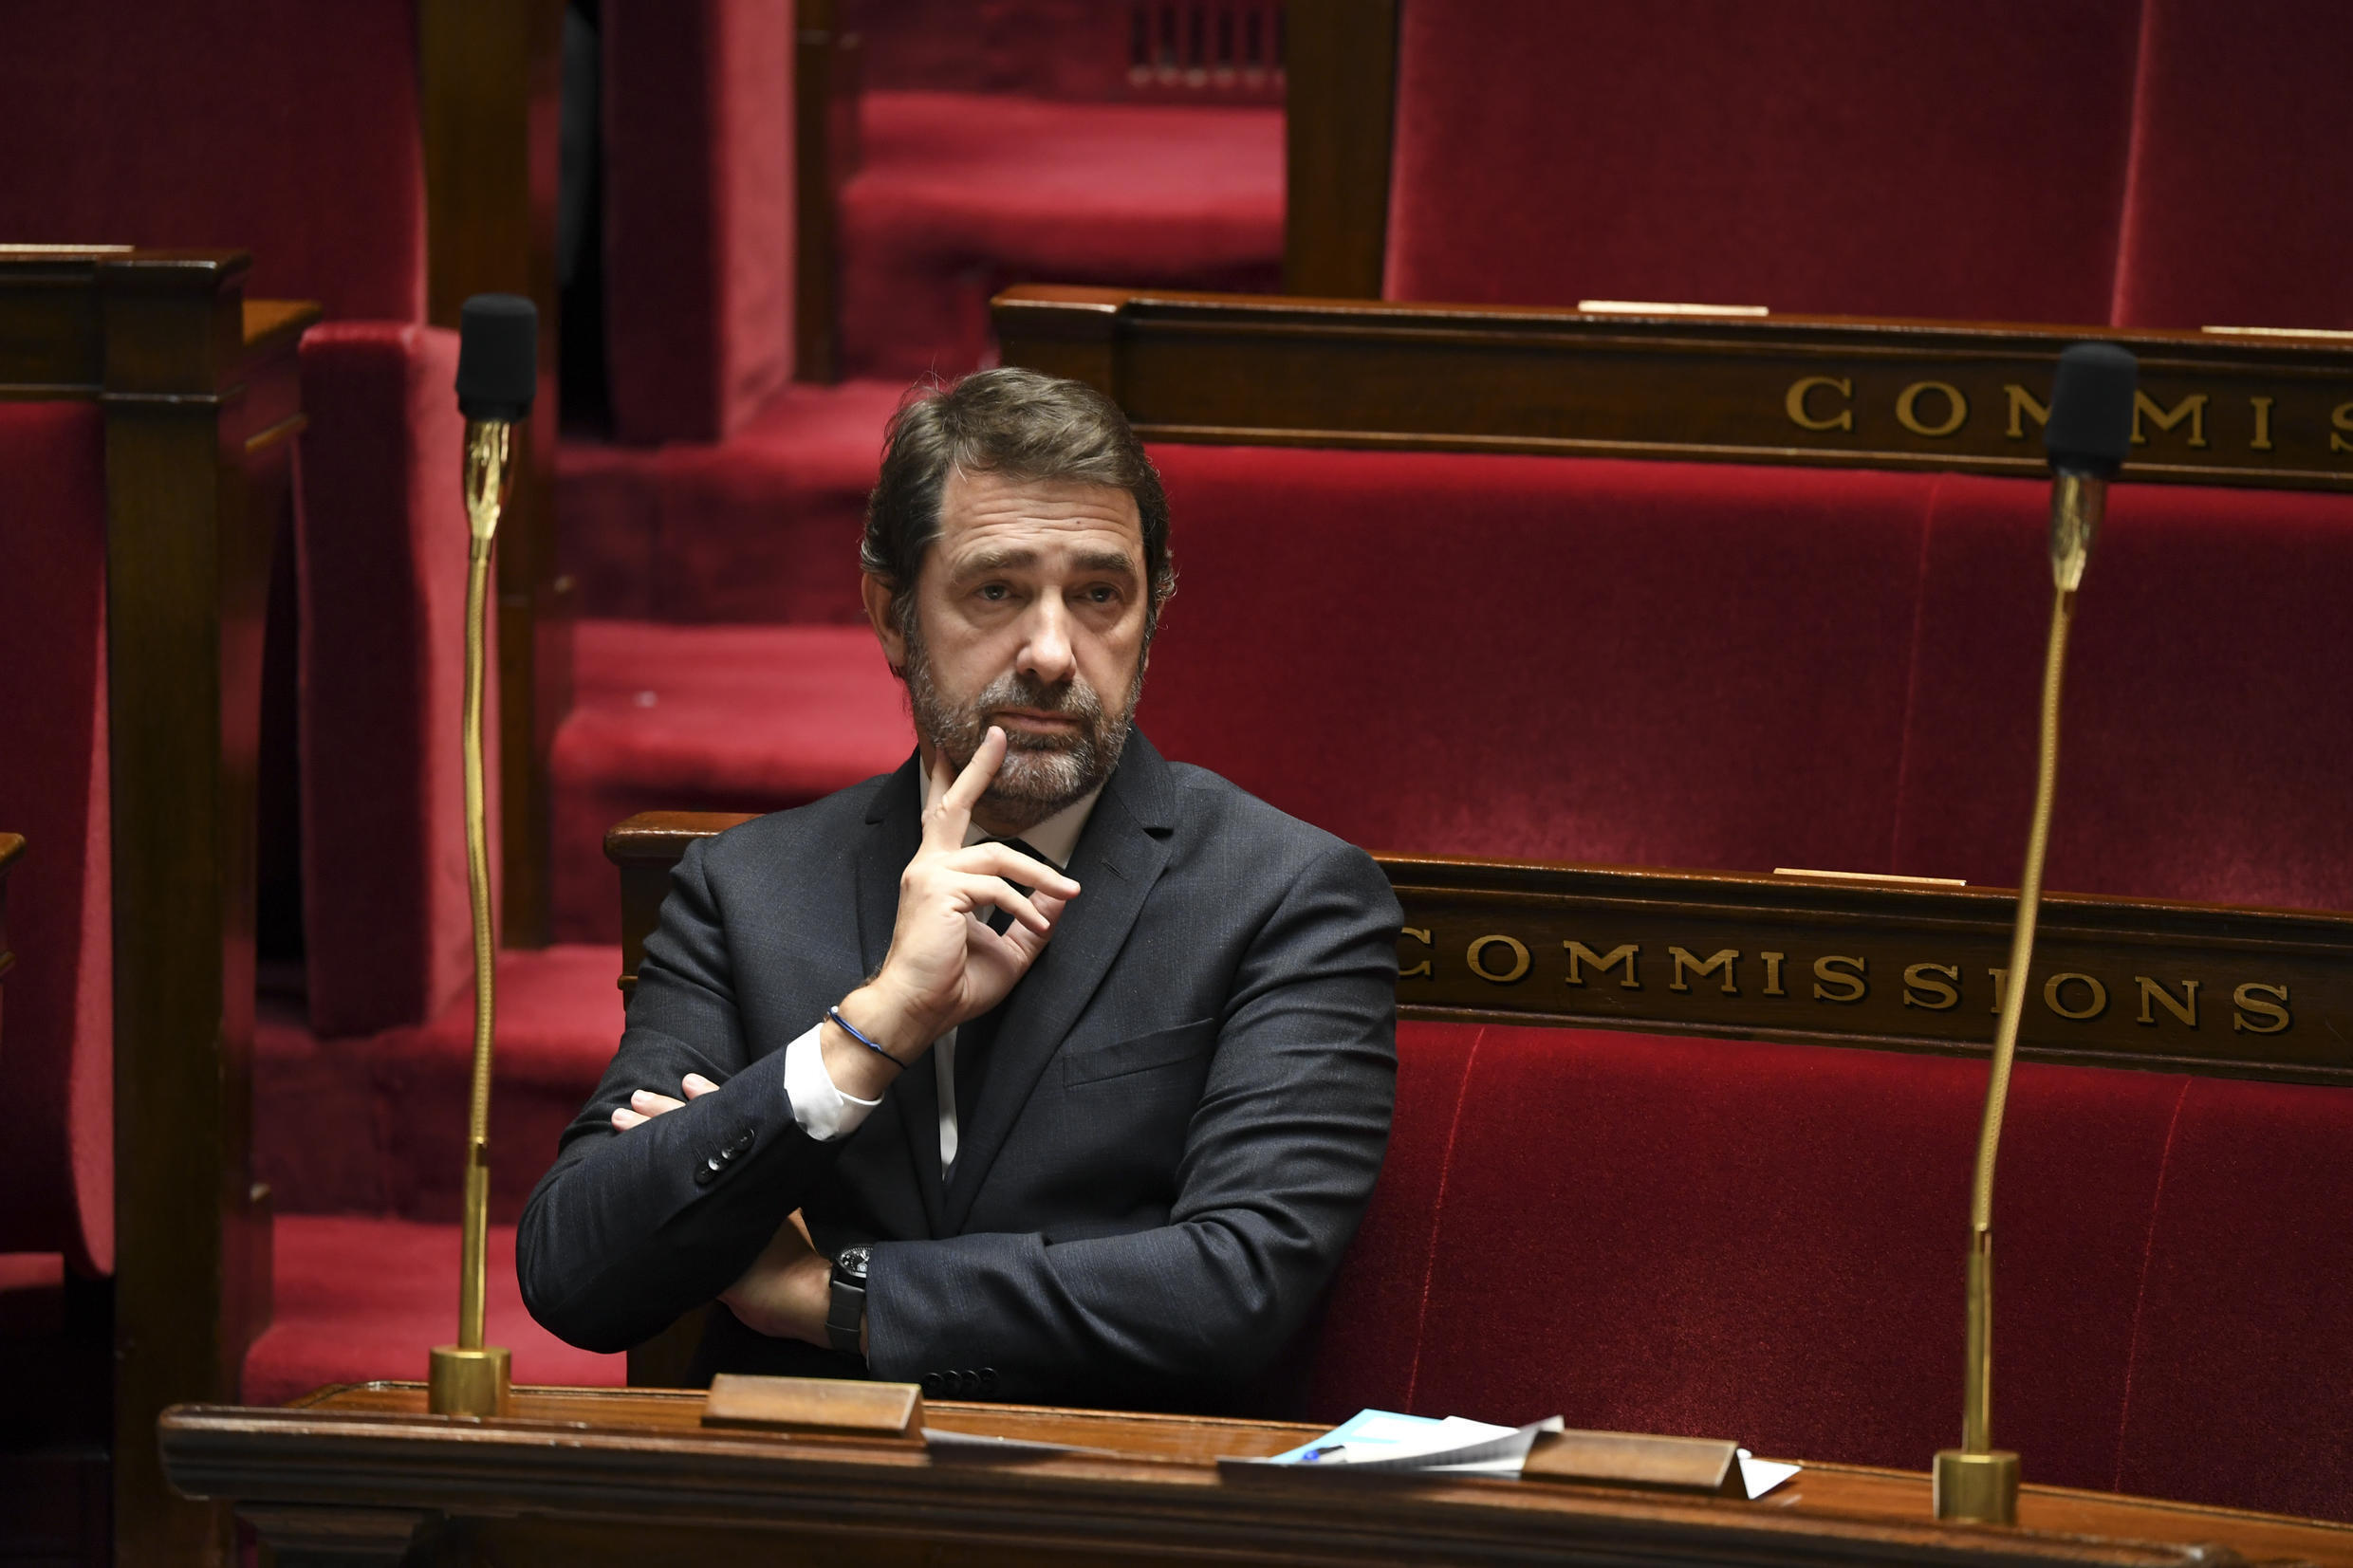 The former Minister of the Interior Christophe Castaner, April 7, 2020, at the National Assembly, in Paris.